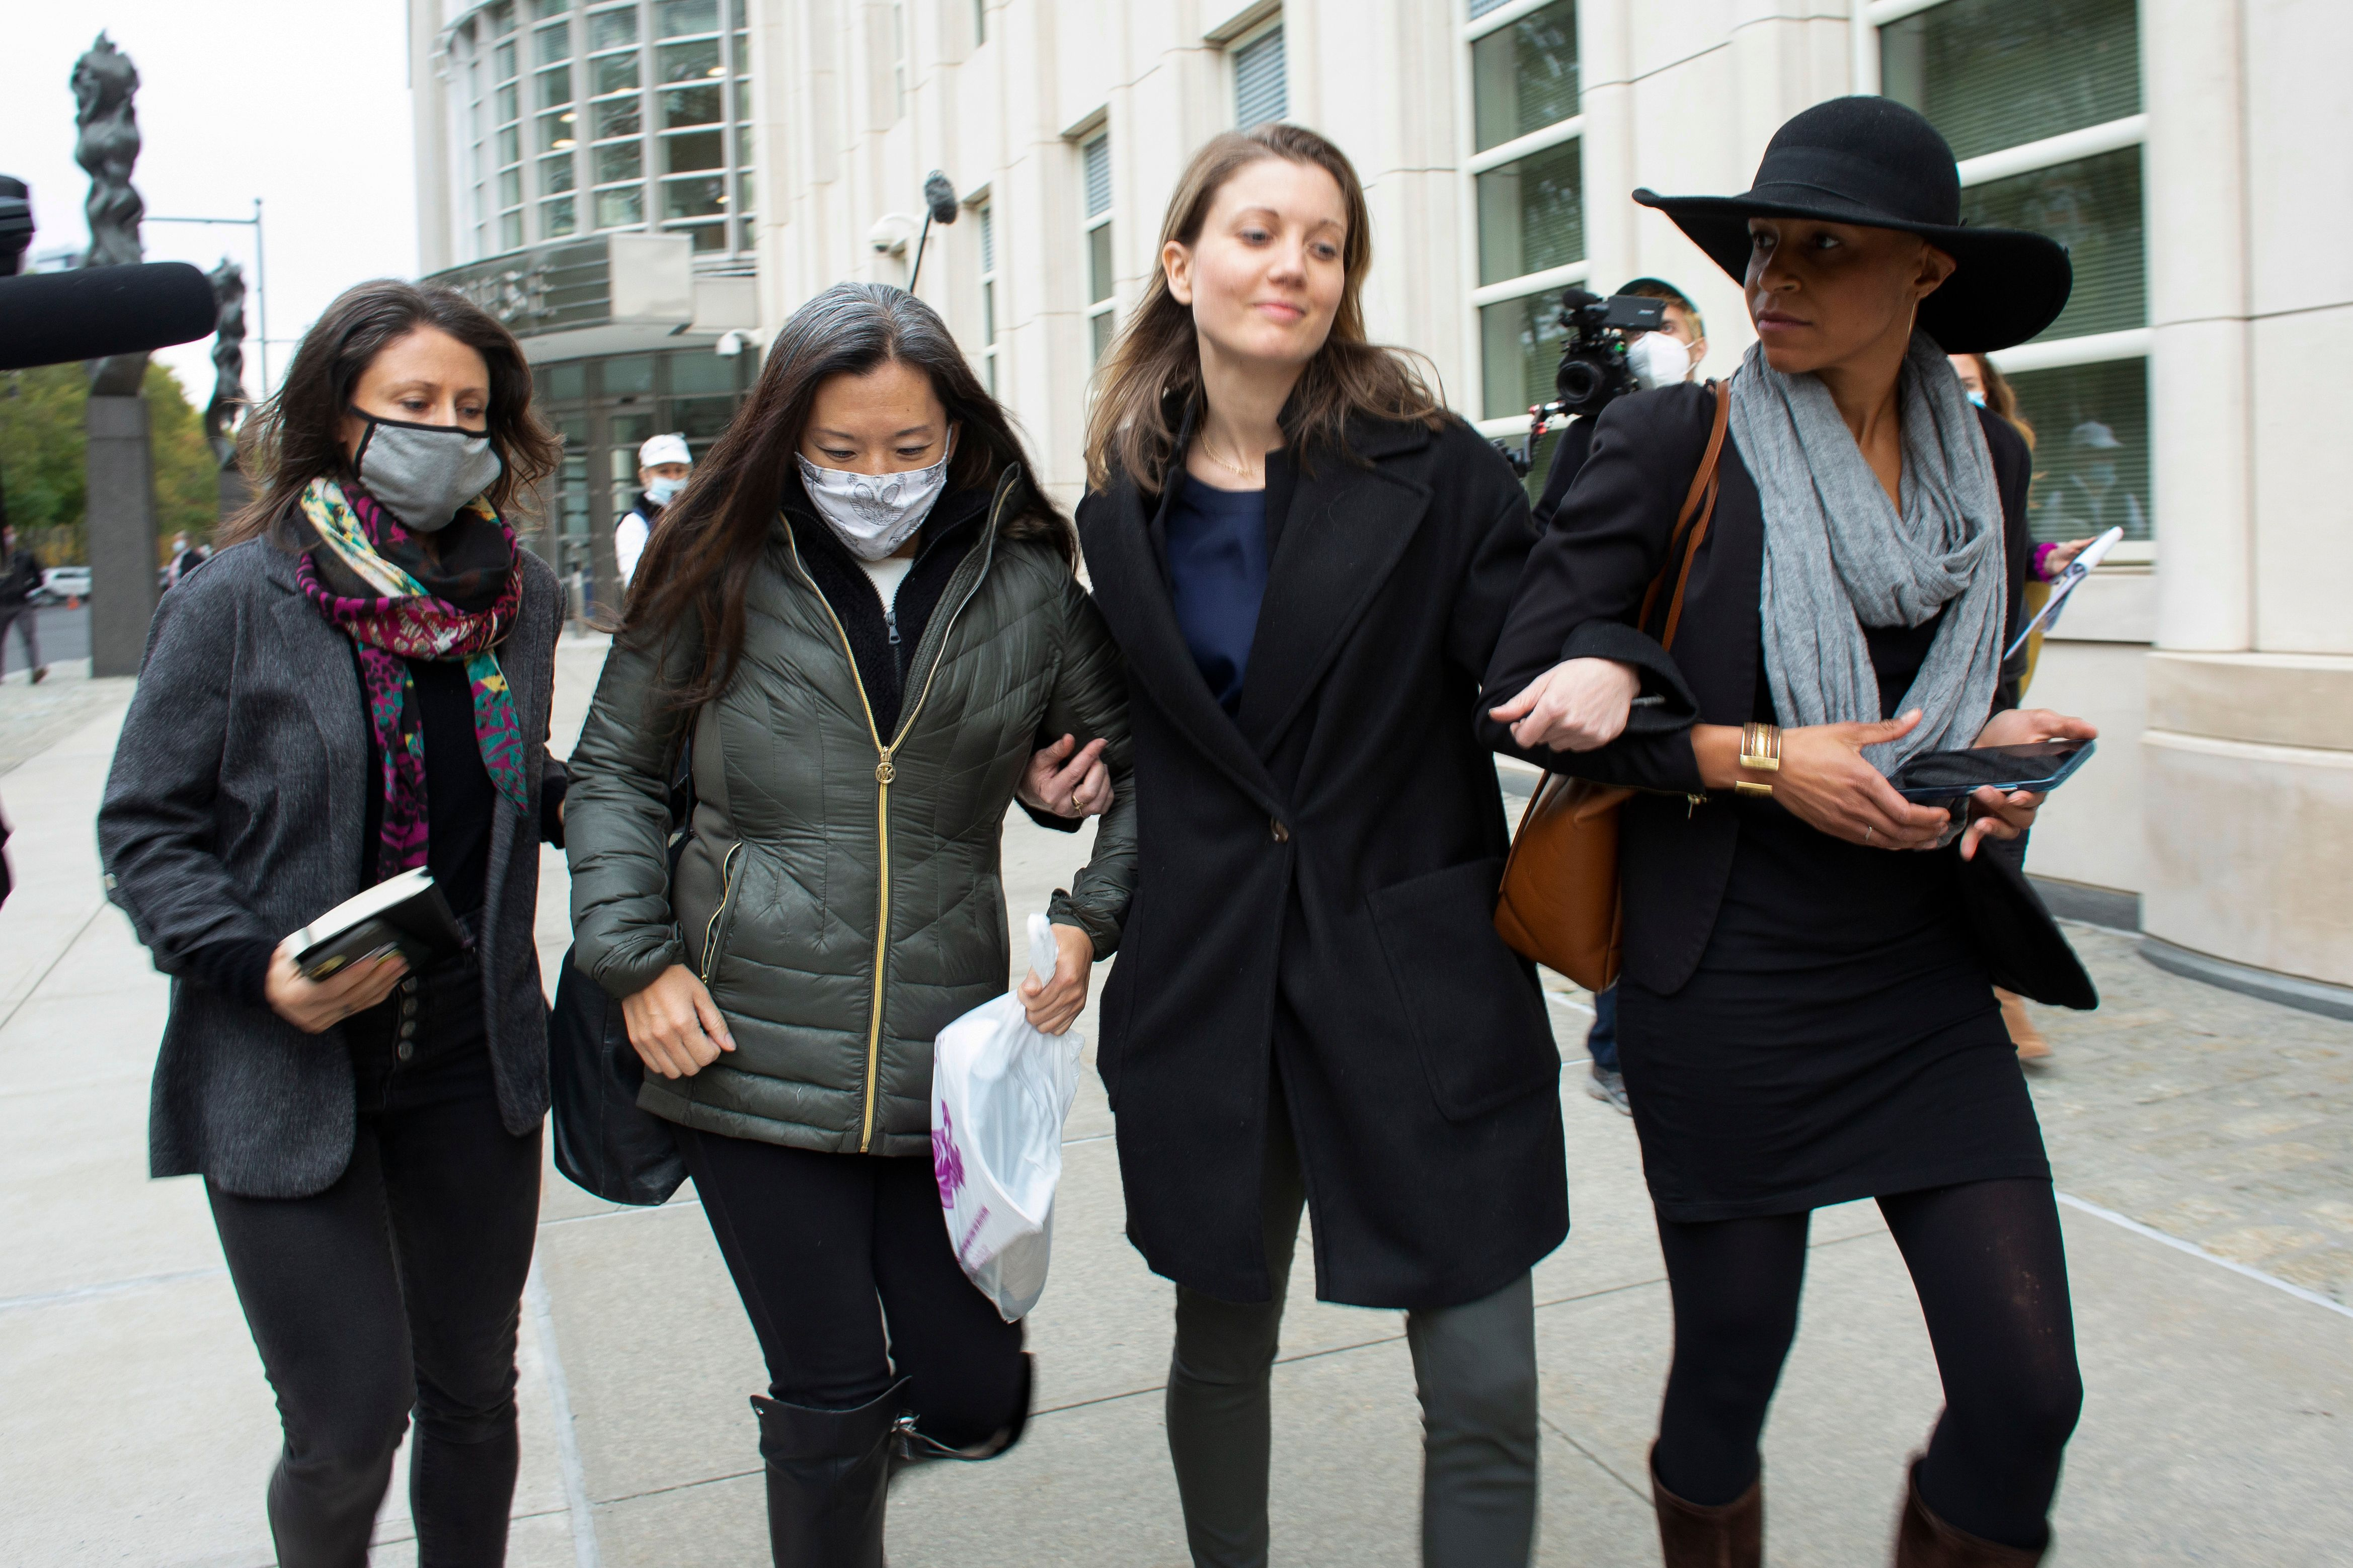 Nicki Clyne and others leave the New York court after Keith Rainiere was sentenced to 120 years in prison on October 27, 2020   Photo: Kena Betancur/AFP/Getty Images